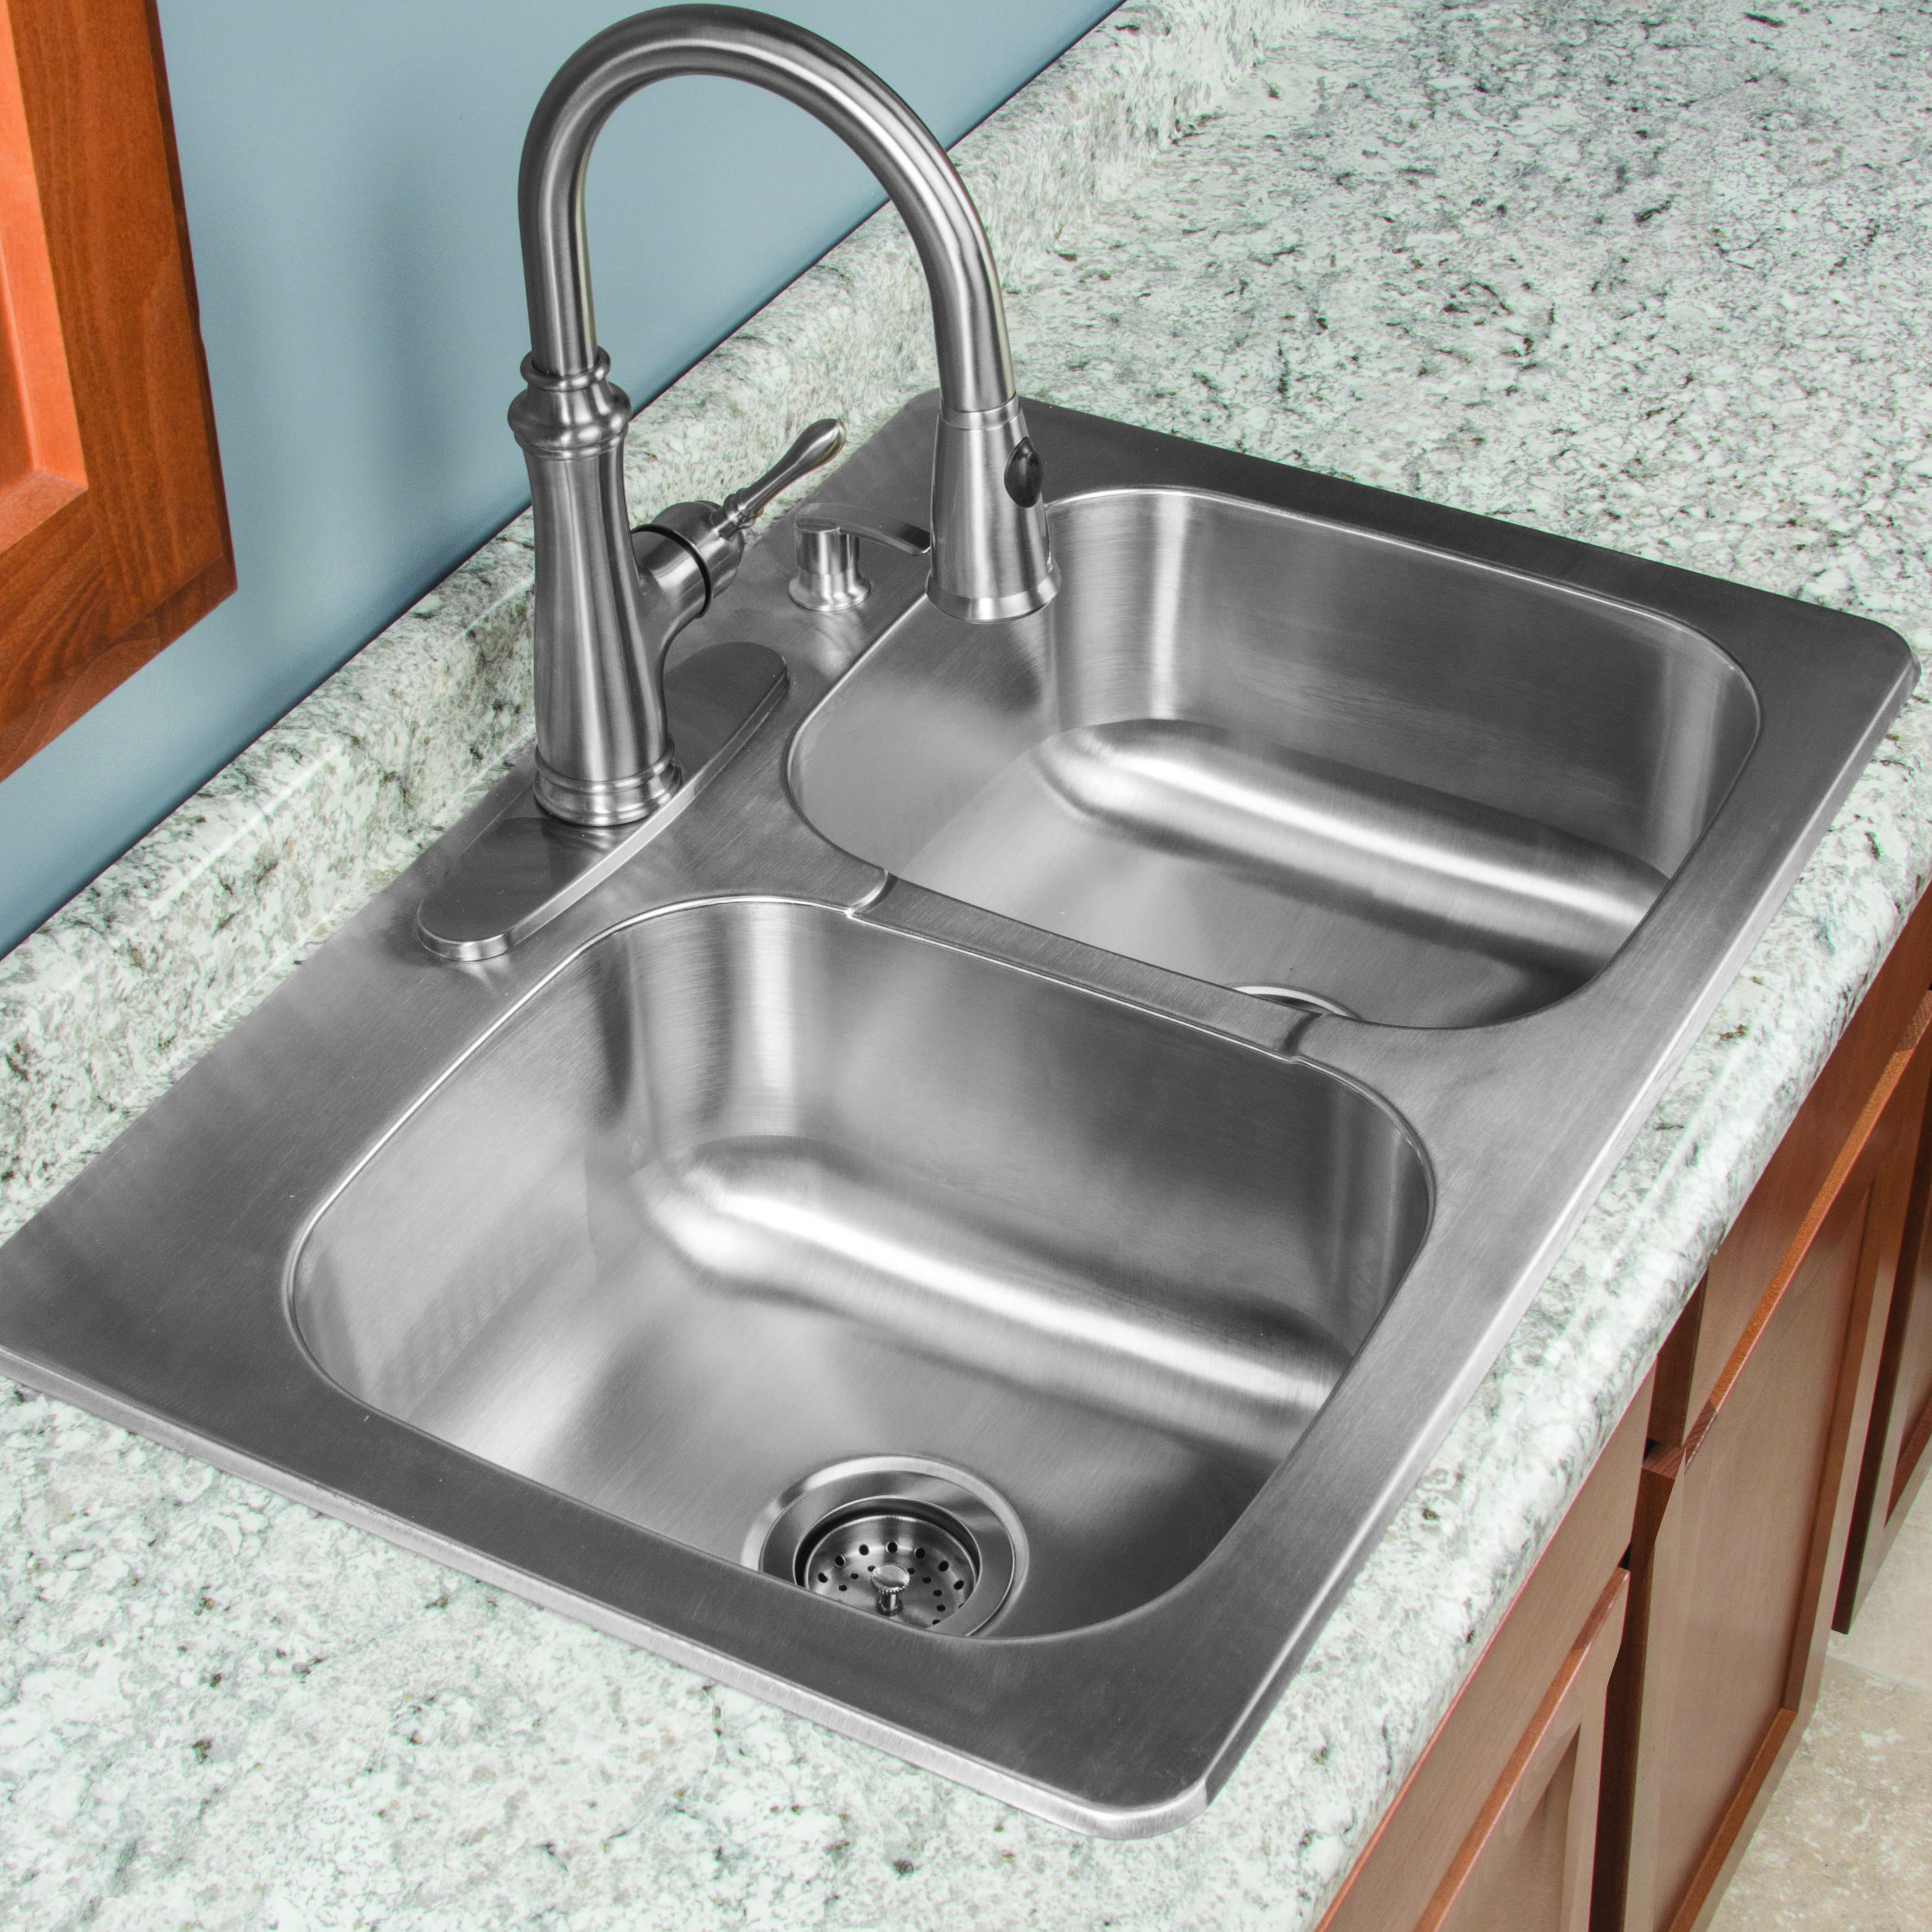 Designed With Thoughtful Details The Tuscany 9 Double Bowl